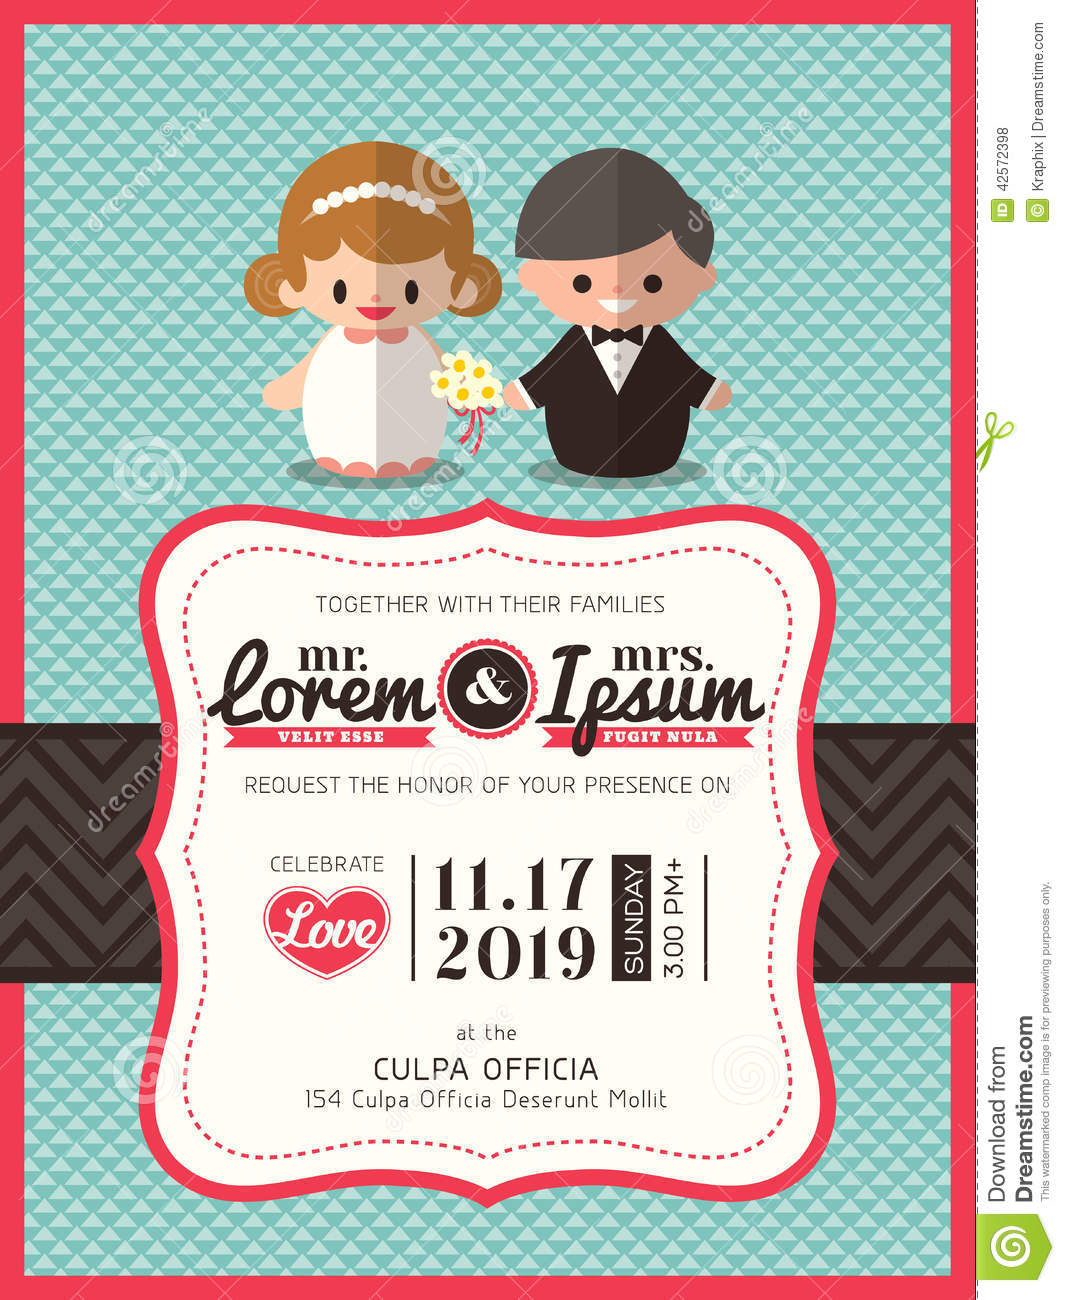 Wedding Invite Card Template With Groom And Bride Cartoon Stock - Cute wedding invitation templates